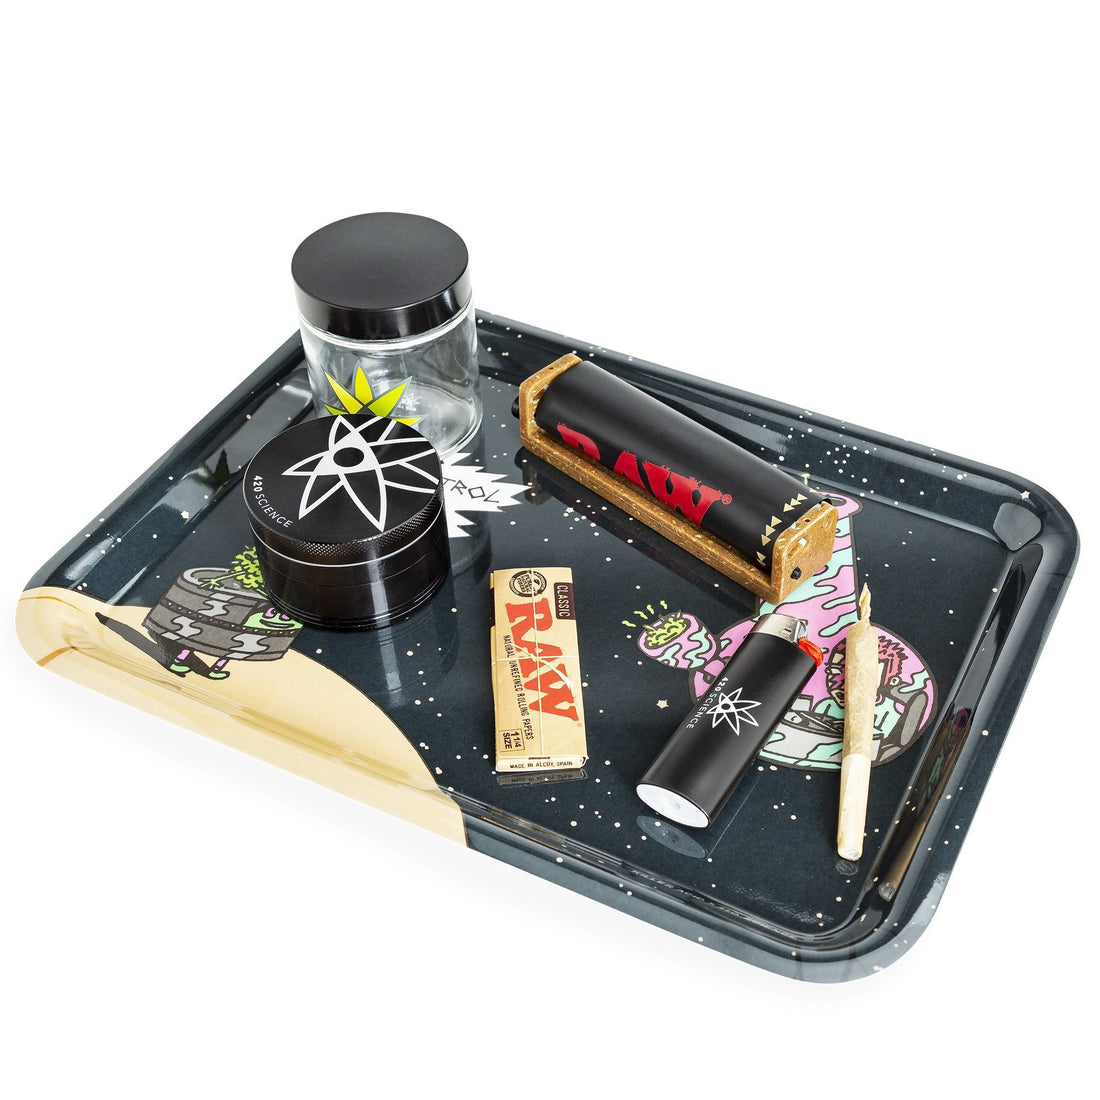 420 Science x Killer Acid Rolling Tray - Odd Space - 420 Science - The most trusted online smoke shop.